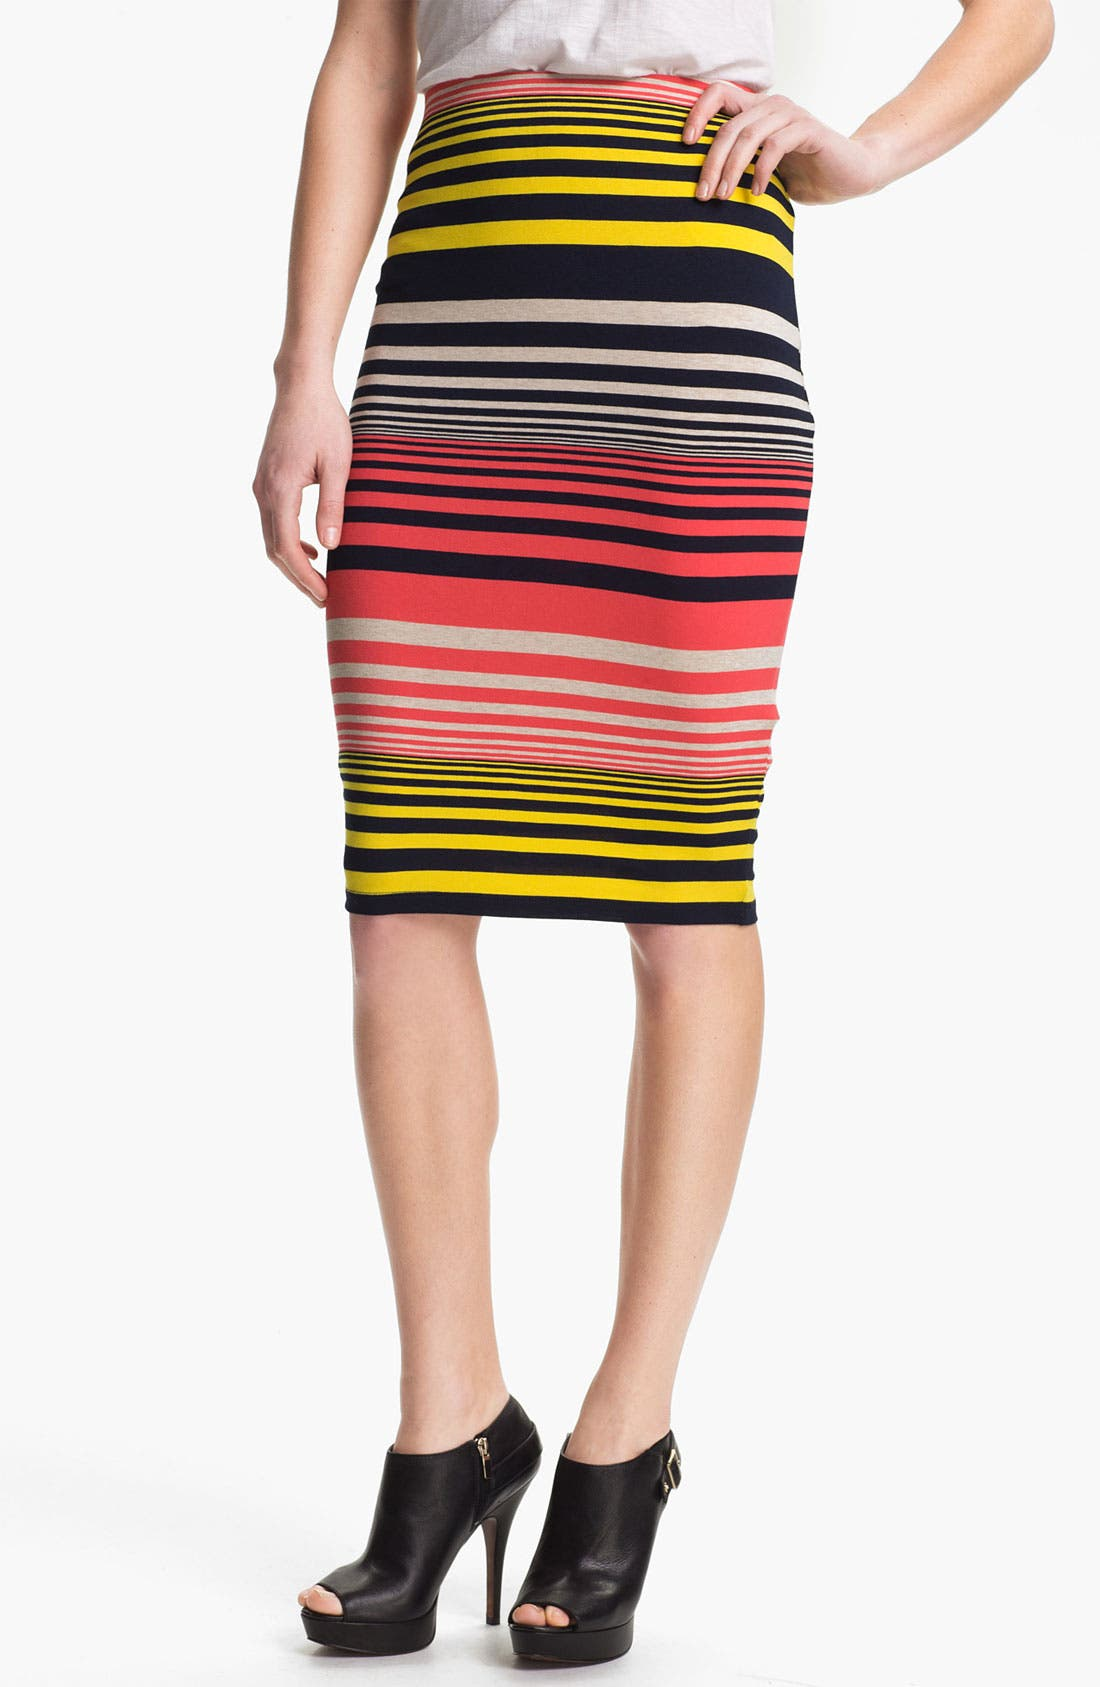 Alternate Image 1 Selected - Three Dots Stripe Tube Skirt